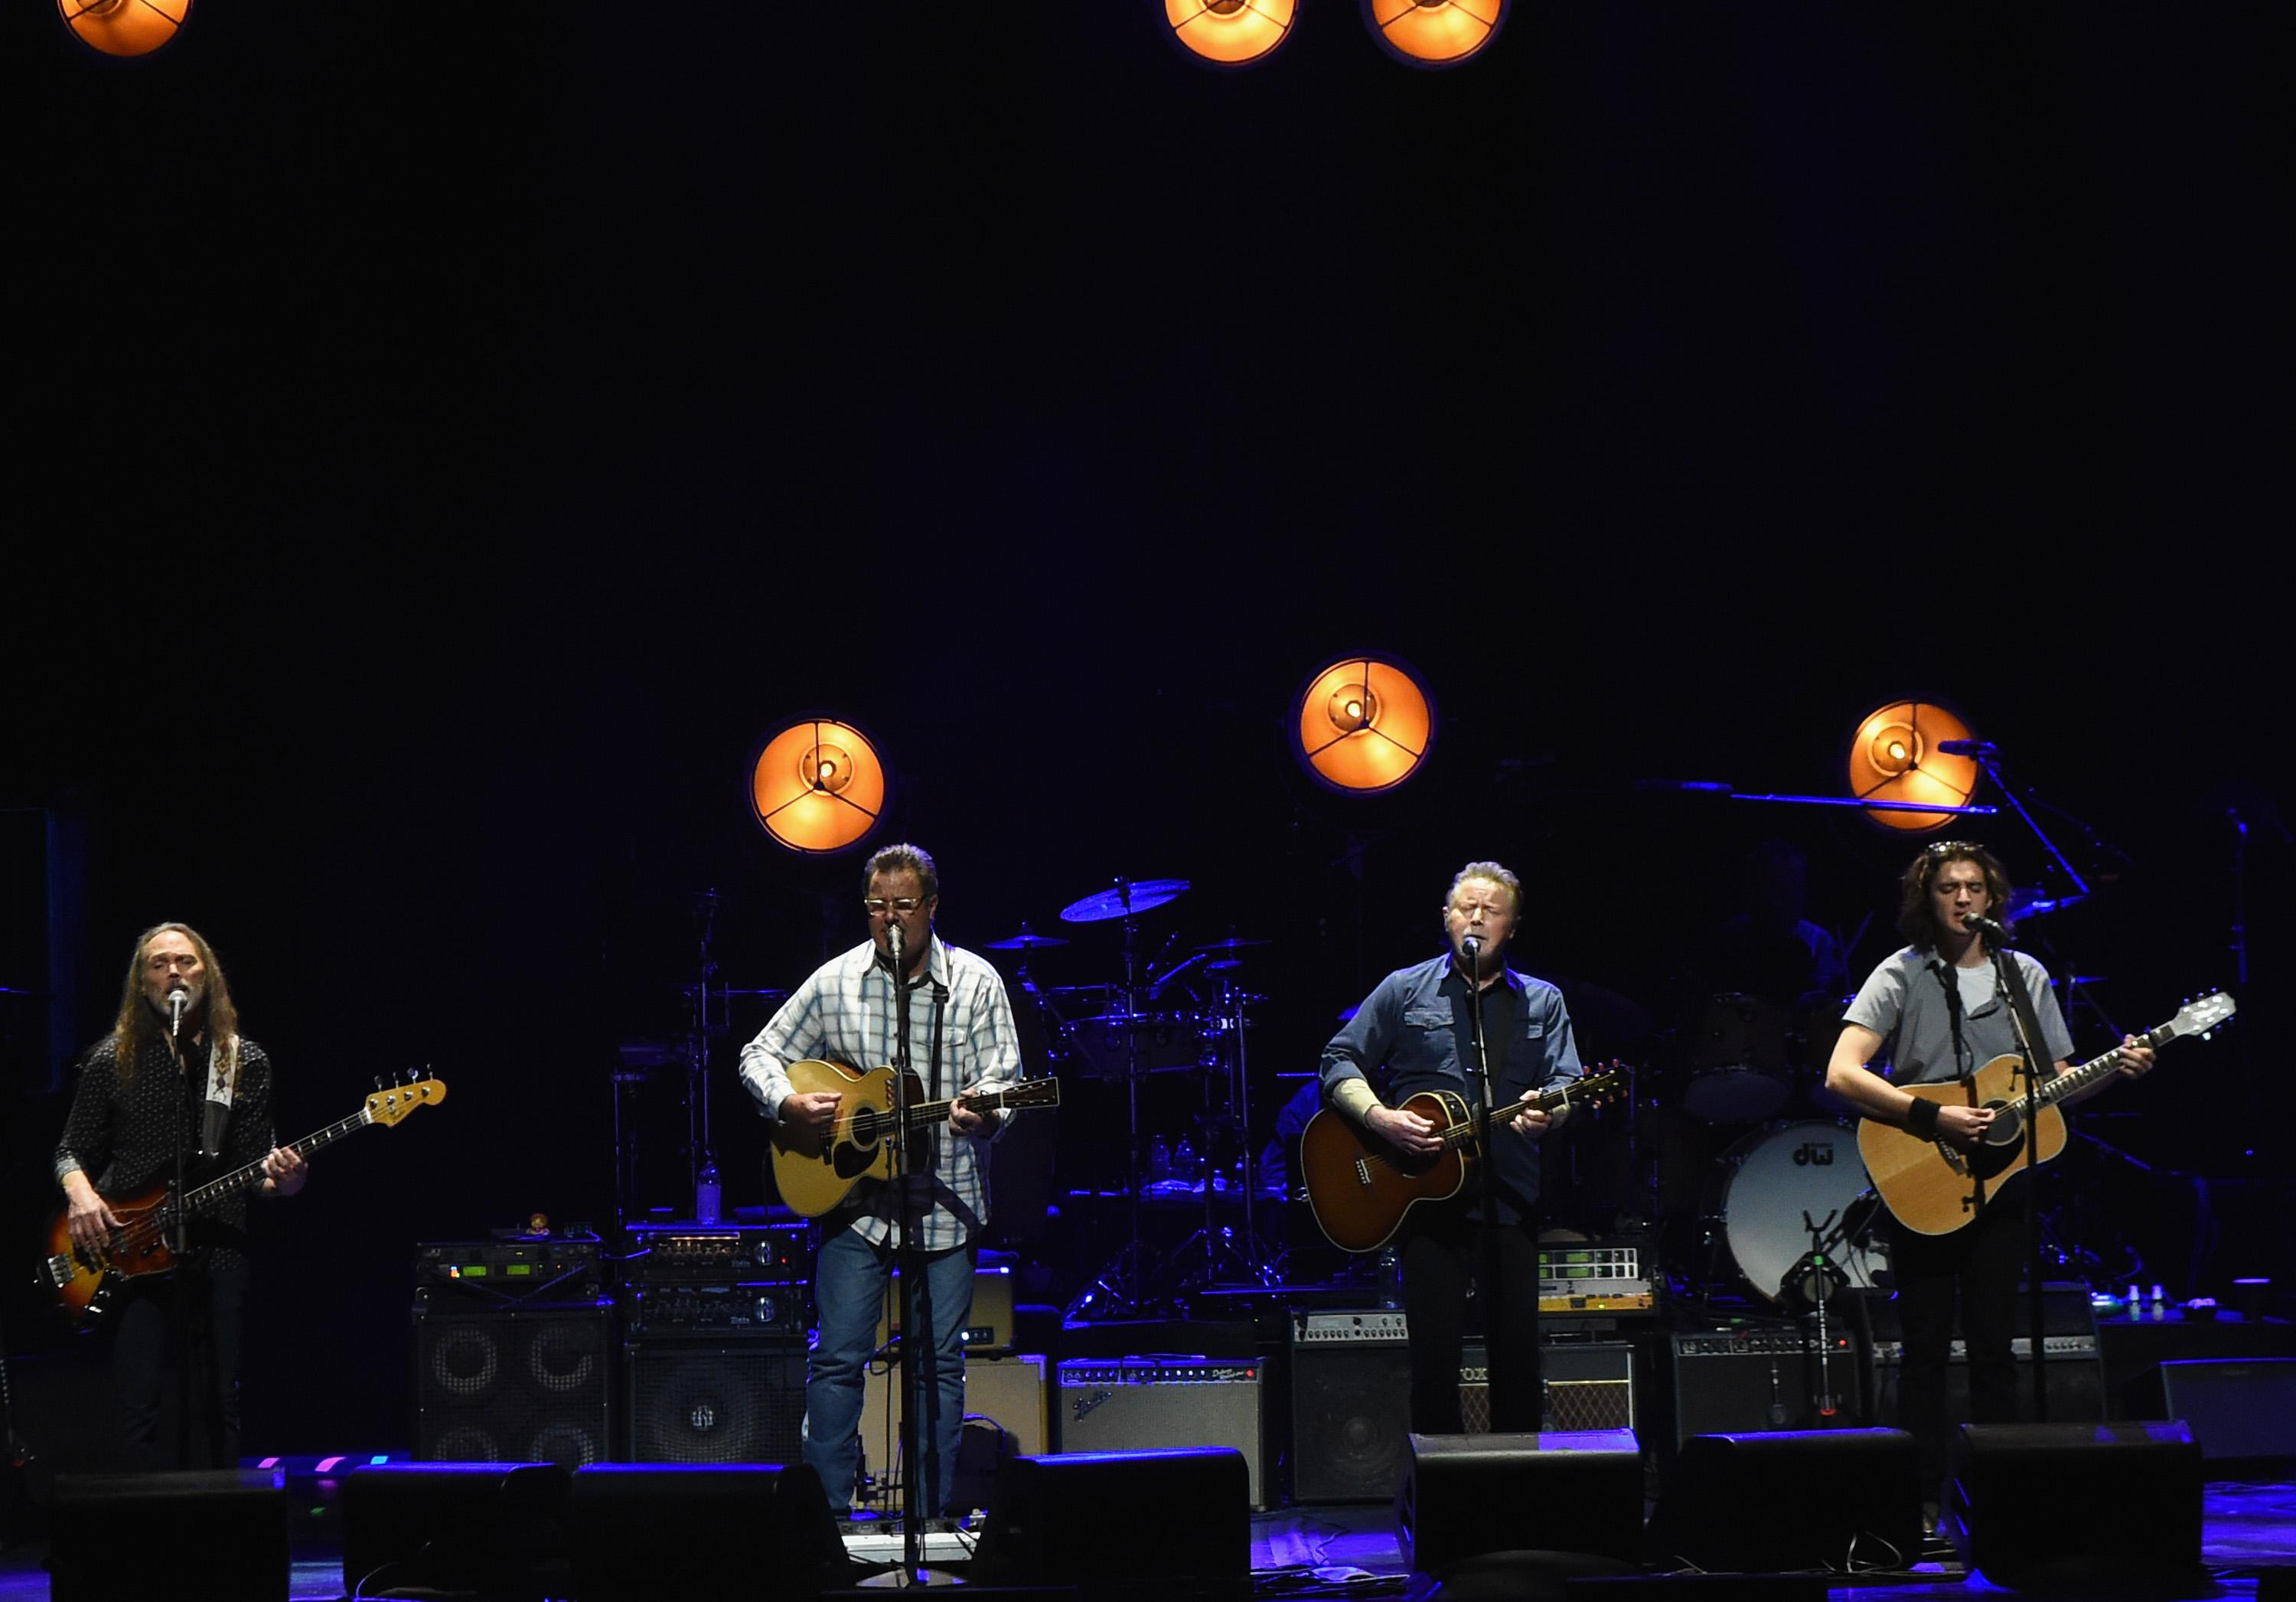 Eagles to perform 'Hotel California' album in its entirety